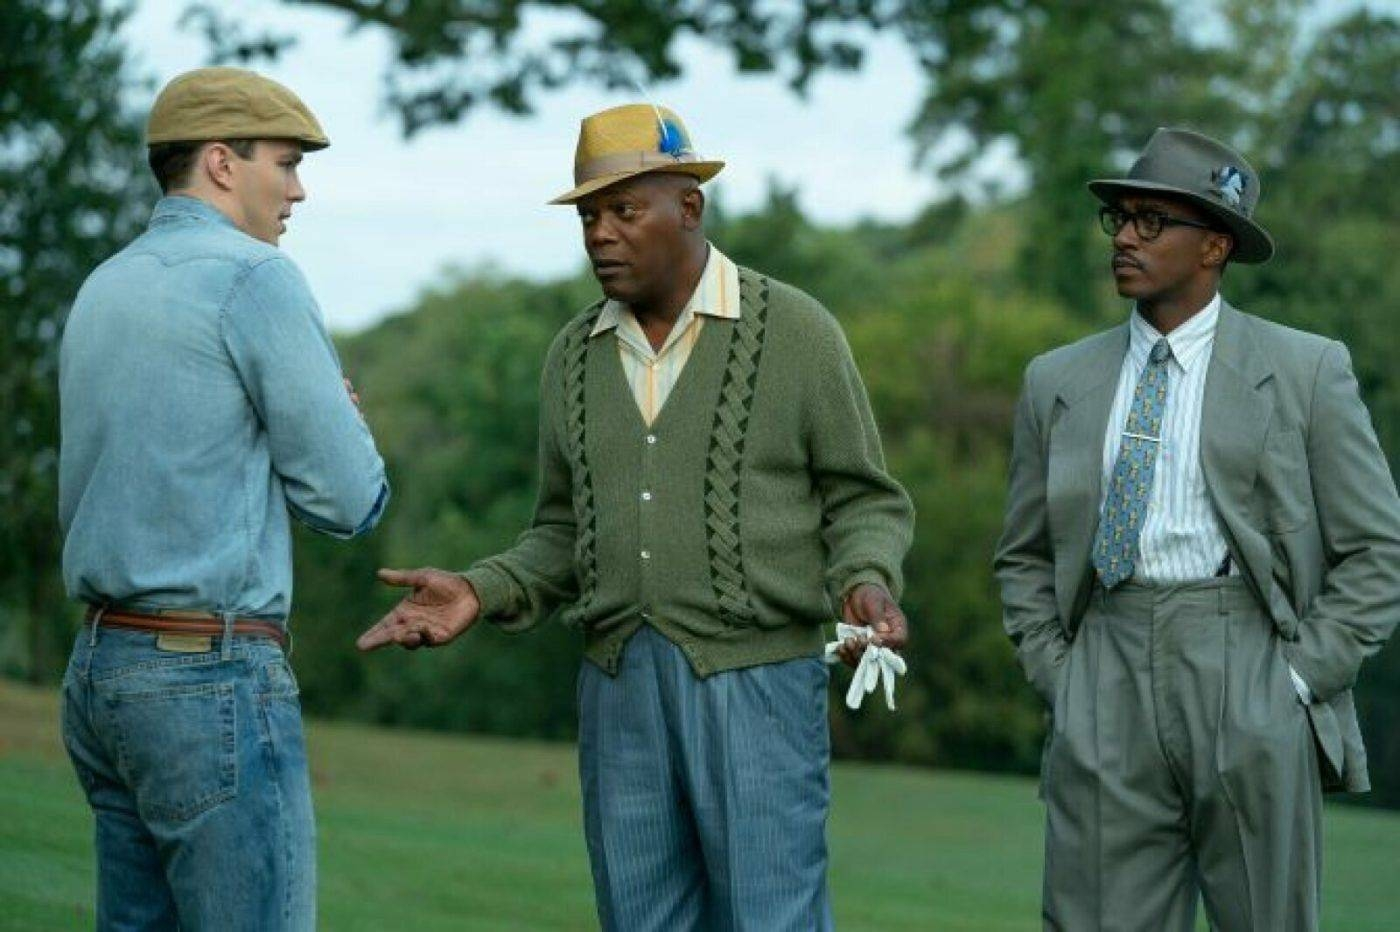 Nicholas Hoult, left, Samuel L. Jackson, center, and Anthony Mackie are seen in this still image taken from the movie 'The Banker'. — Courtesy photo